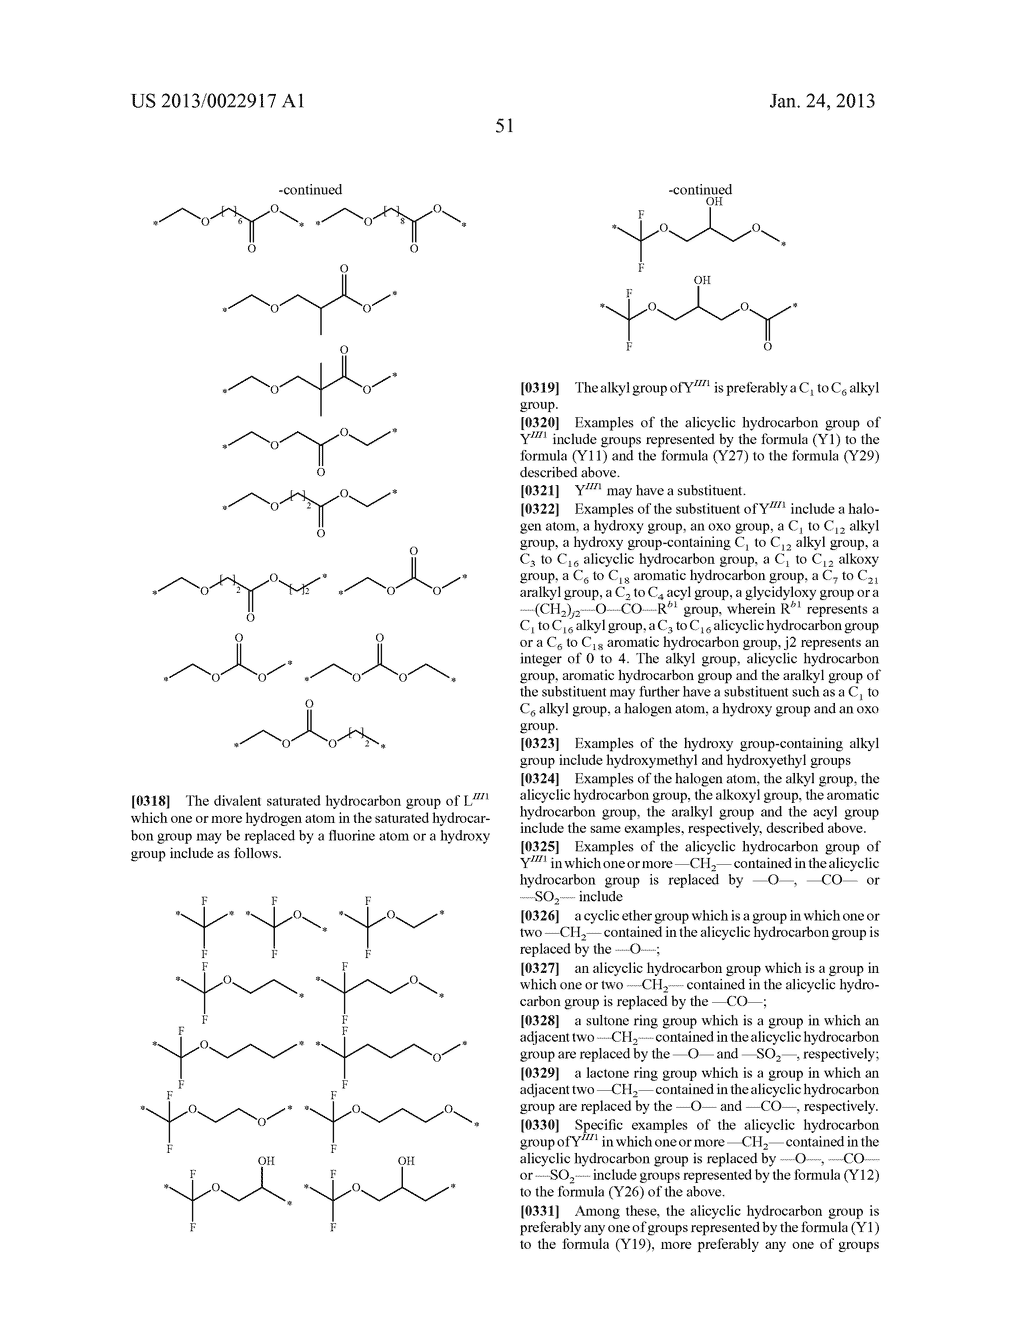 RESIST COMPOSITION AND METHOD FOR PRODUCING RESIST PATTERN - diagram, schematic, and image 52